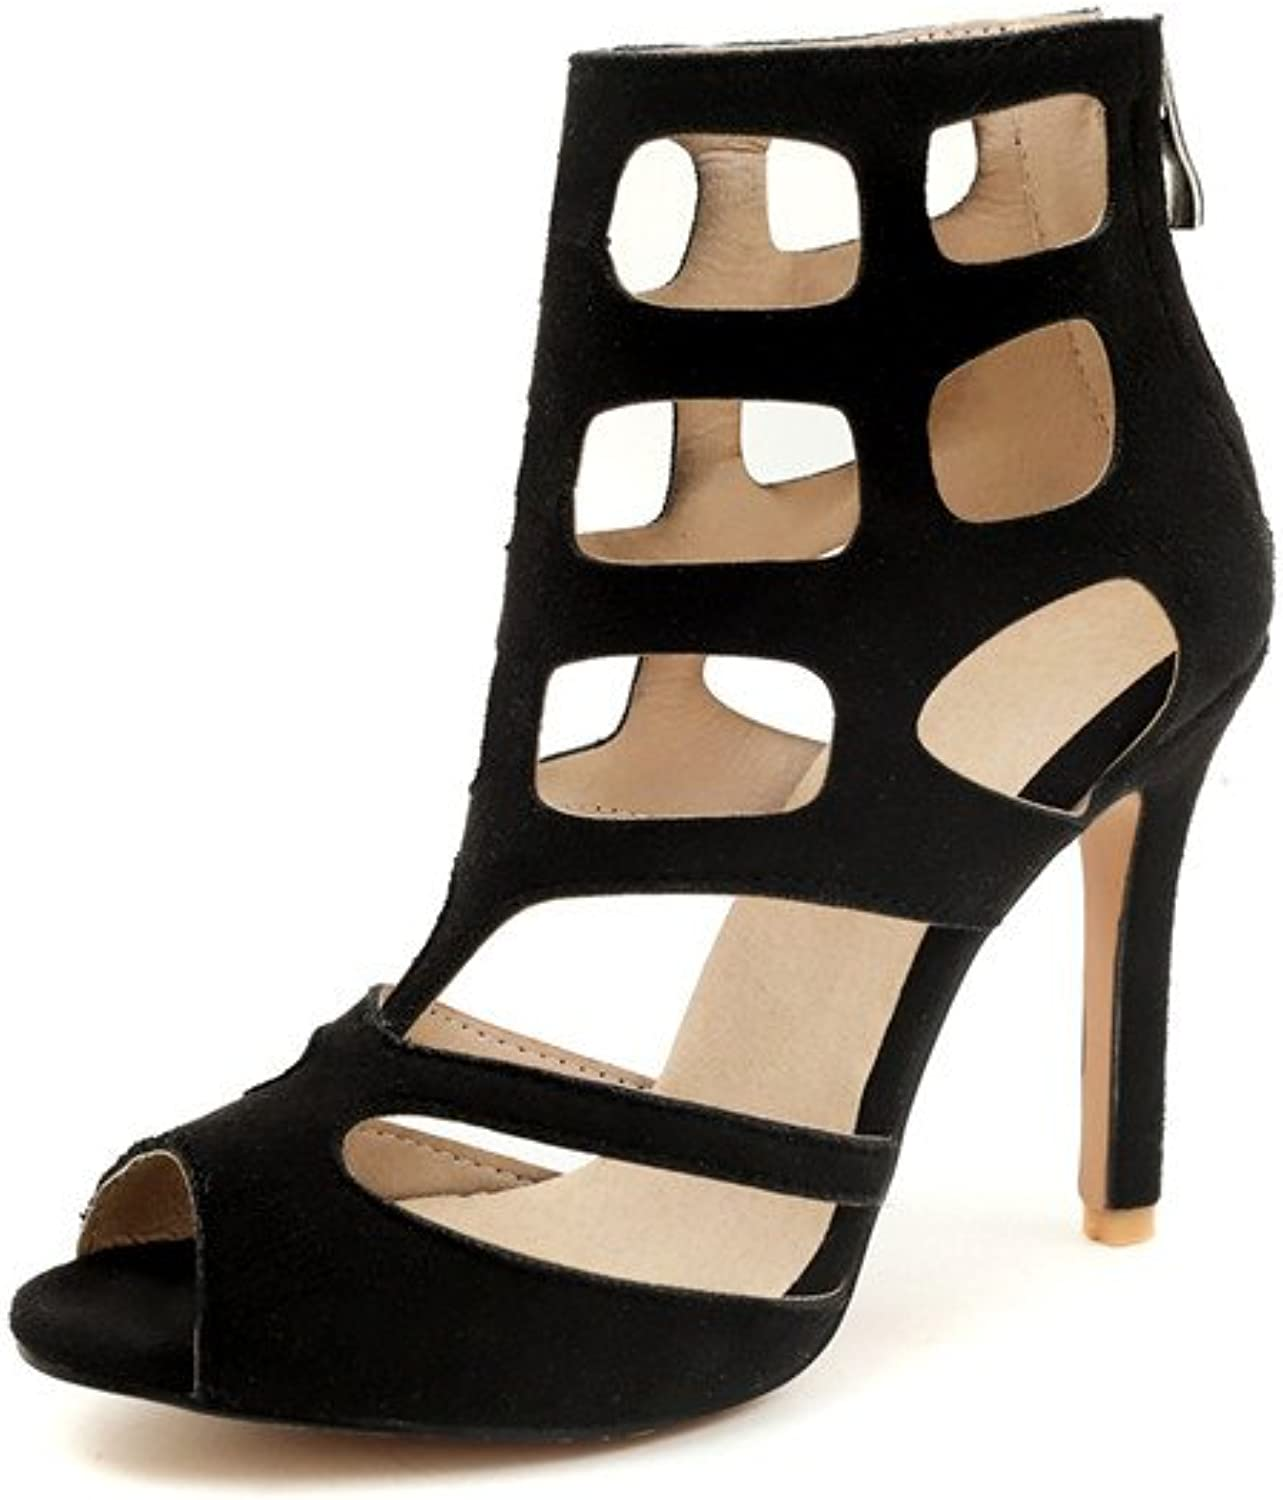 Women's Sandals Summer Fashion Personality Stiletto Heel Large Size Lady's High Heels Pumps 32-46,Black,34